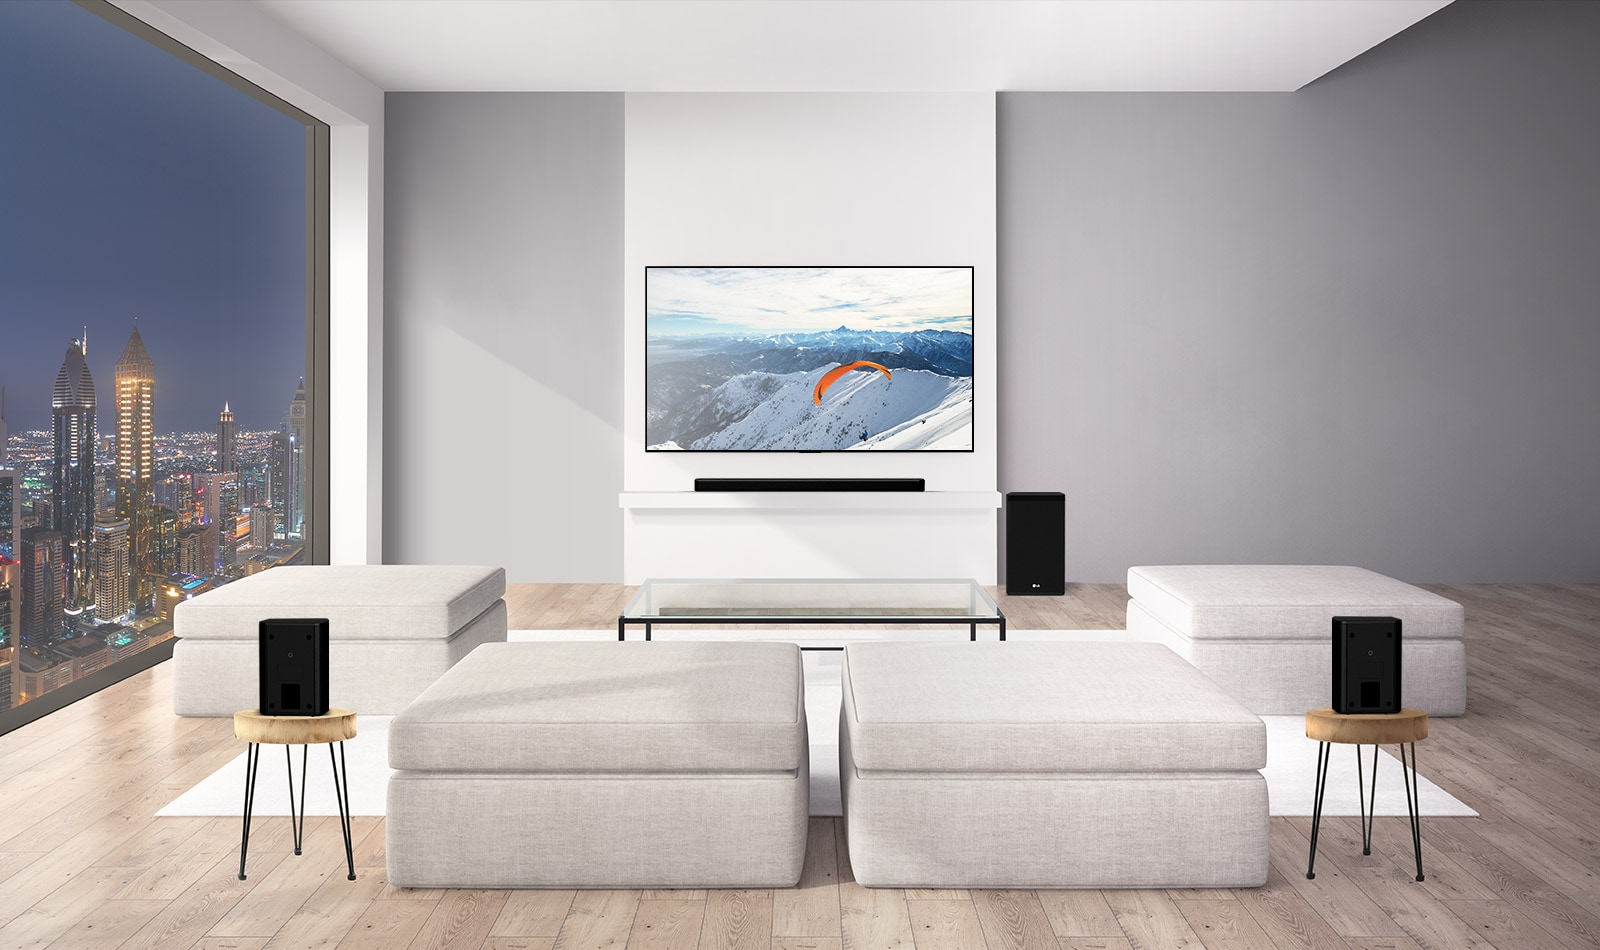 LG Soundbar with a sub-woofer and 2 rear upfiring speakers is in a living room. Graphics of soundwaves coming out from rear speakers to the ceiling and bounce back. (play the video)